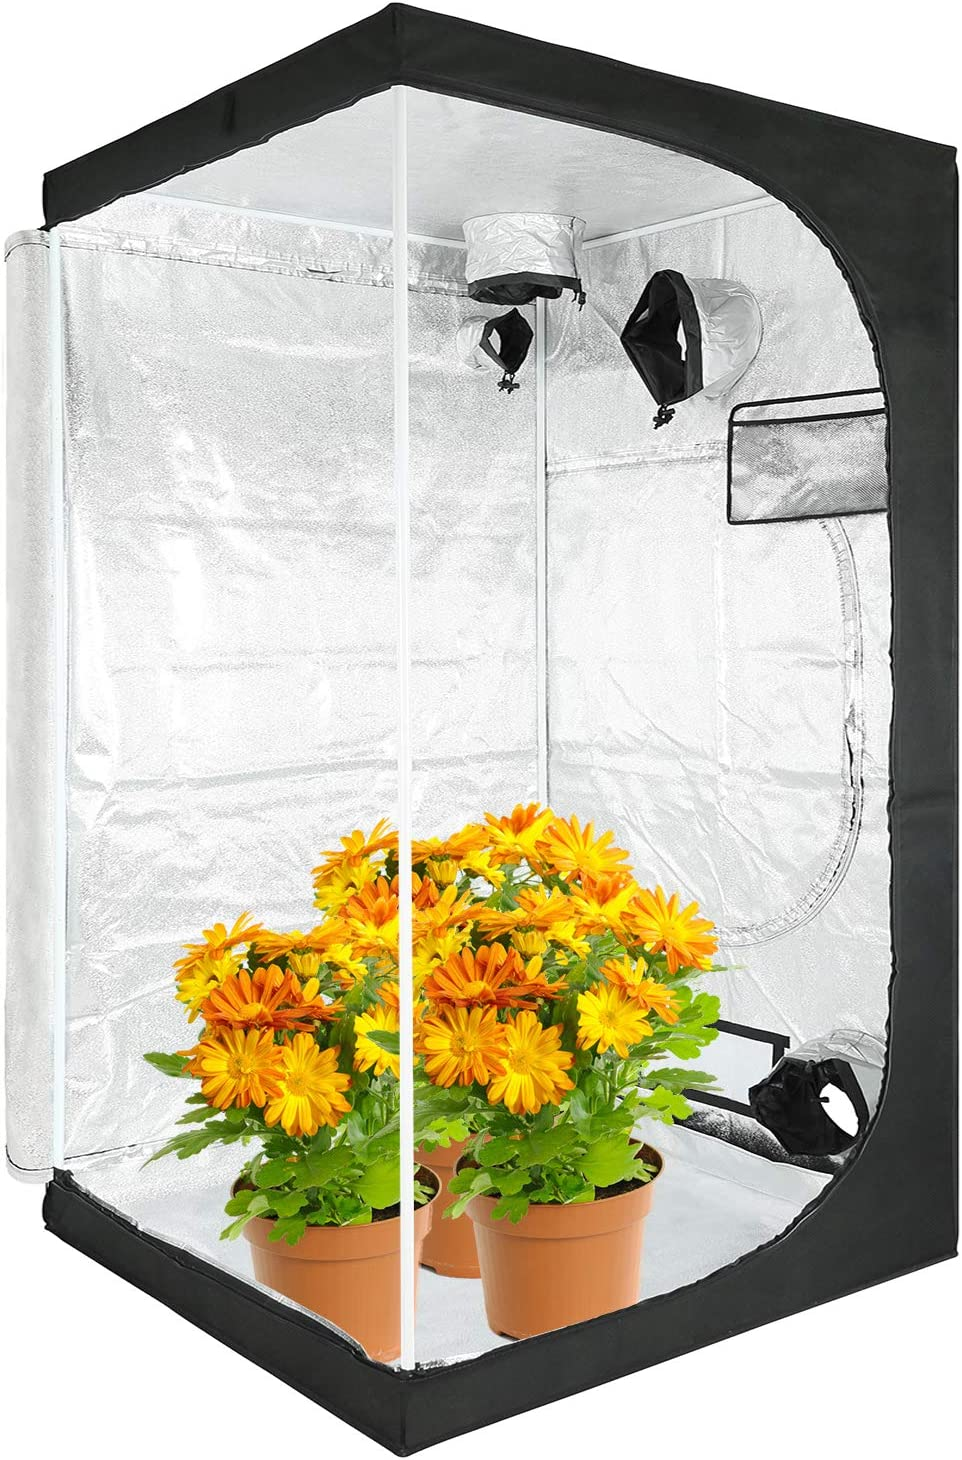 "VERTOR VT 48""x48""x80"" Horticulture Reflective Mylar Hydroponic Grow Tent with Observation Window and Floor Tray for Indoor Plant Growing 4x4 (for 4 Plants)"